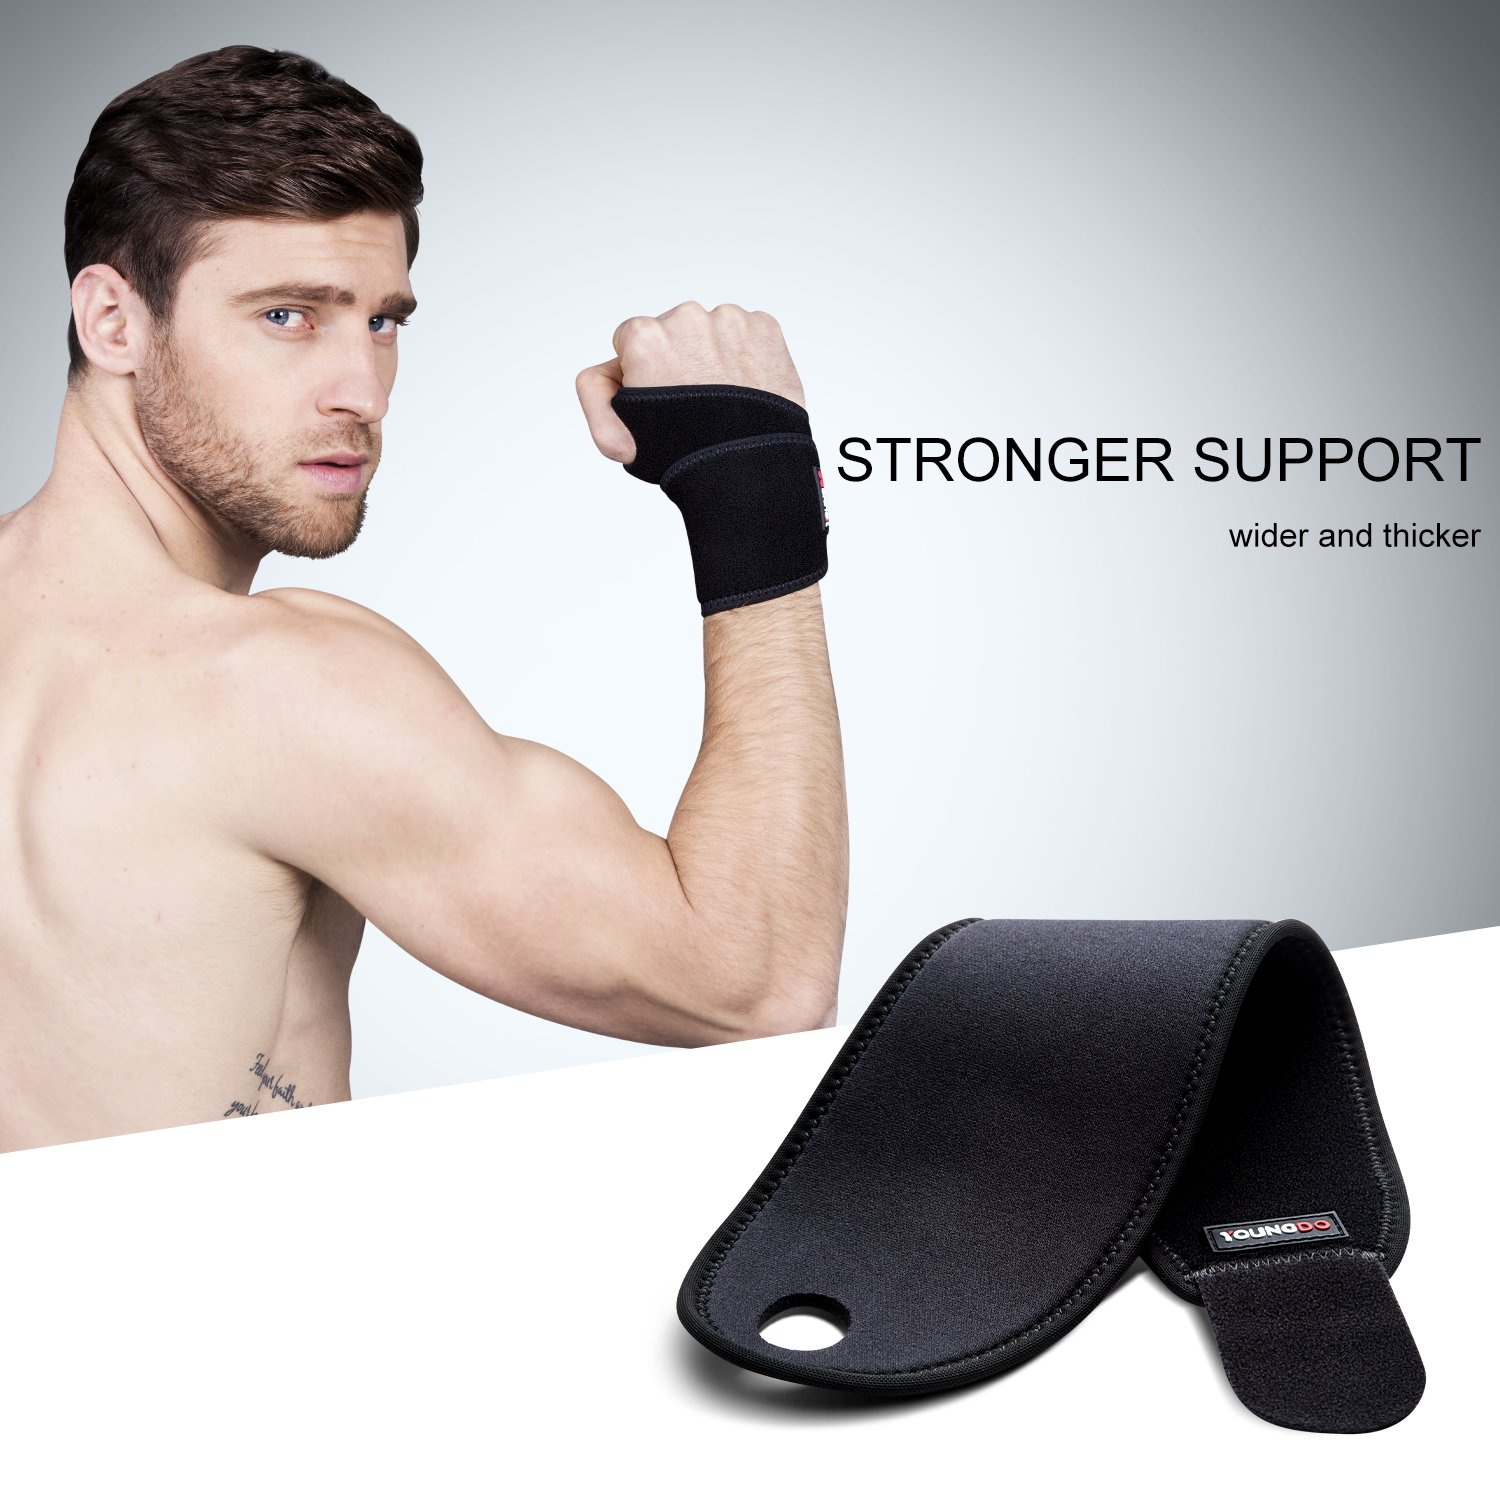 YOUNGDO Wrist Support Wrist Brace Adjustable Breathable Neoprene with Velcro for Men,Women and Children to Help Relieve Pain from Carpal Tunnel Syndrome Tendonitis and Wrist Pain-1 Pair Black